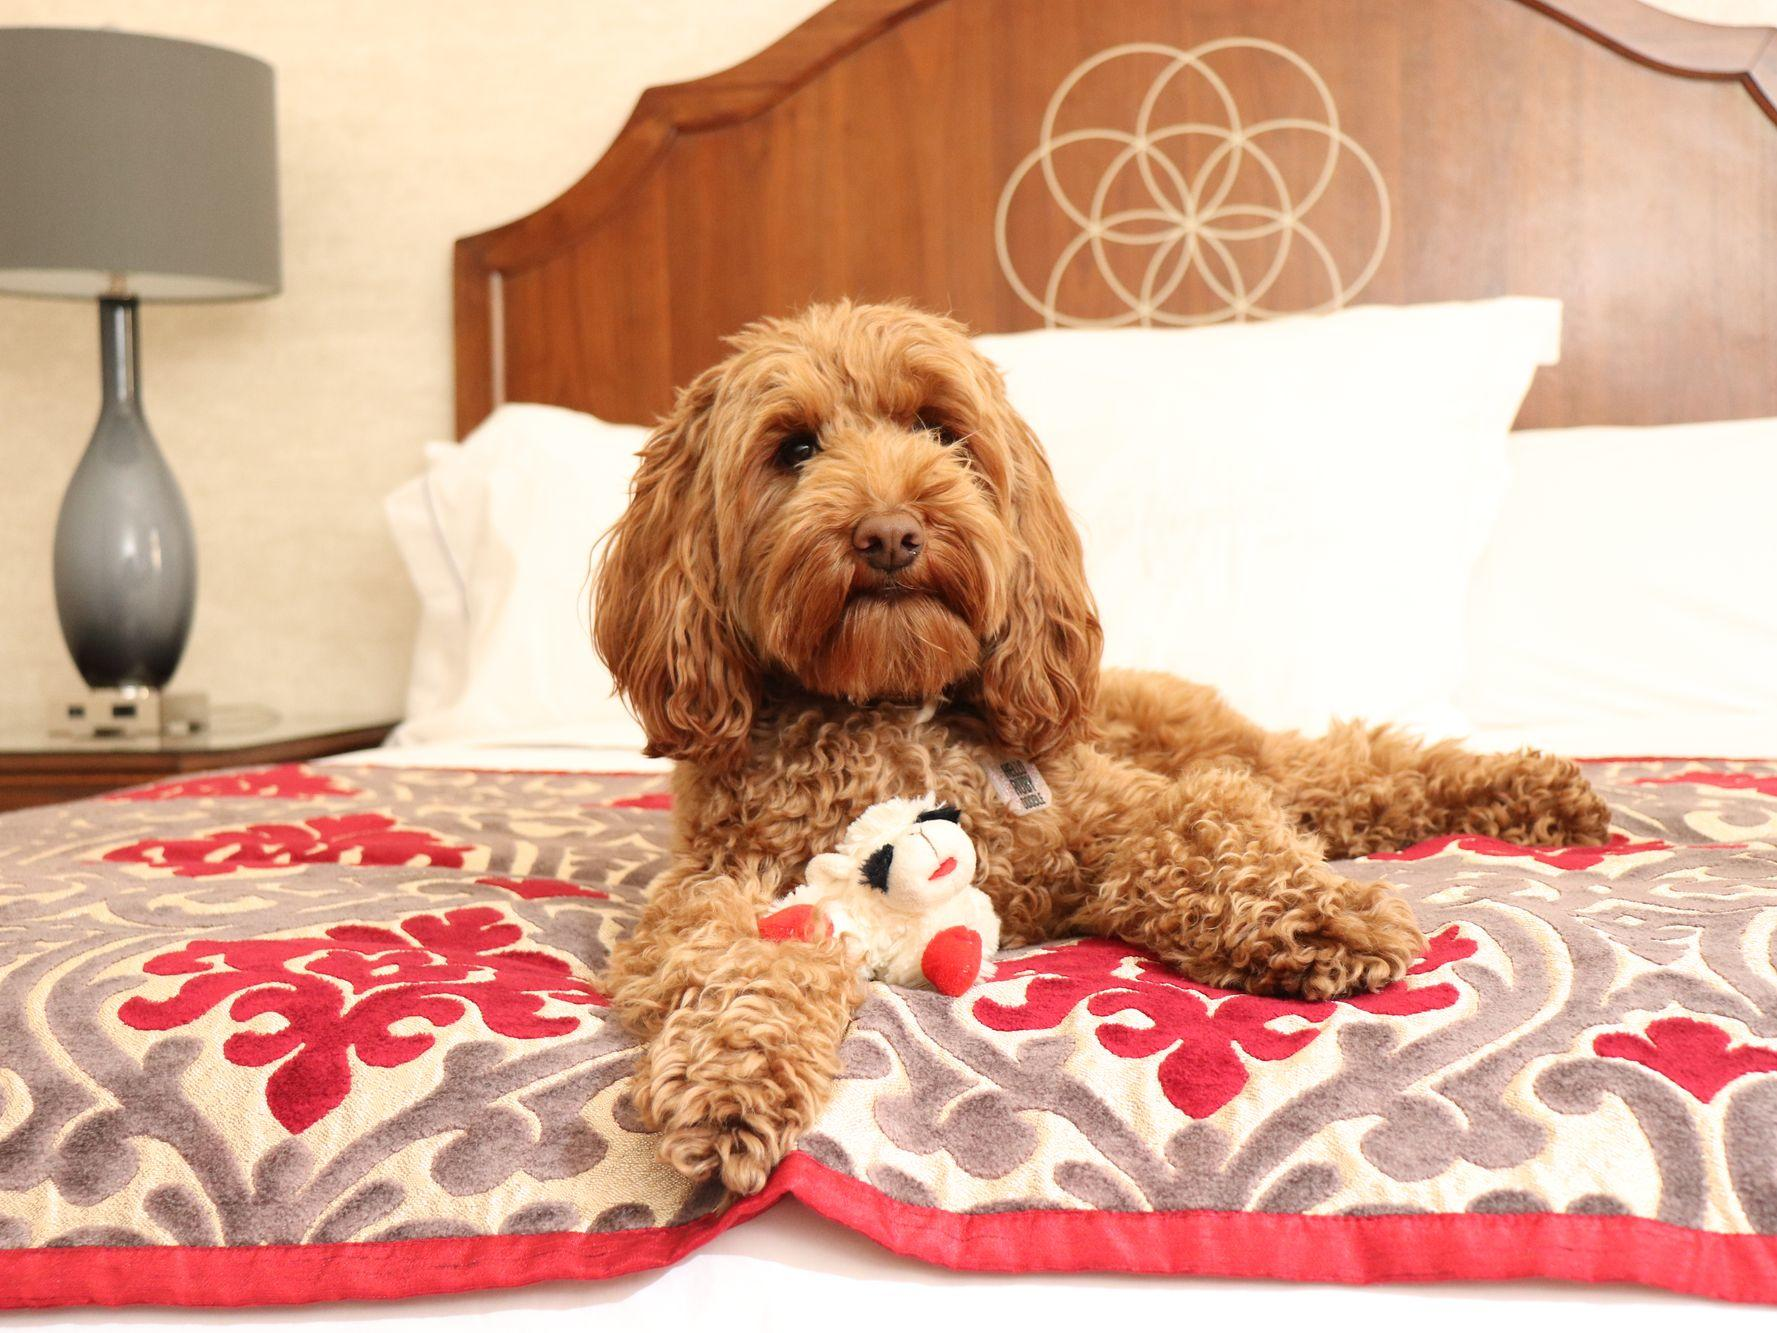 Labradoodle sitting on bed with toy